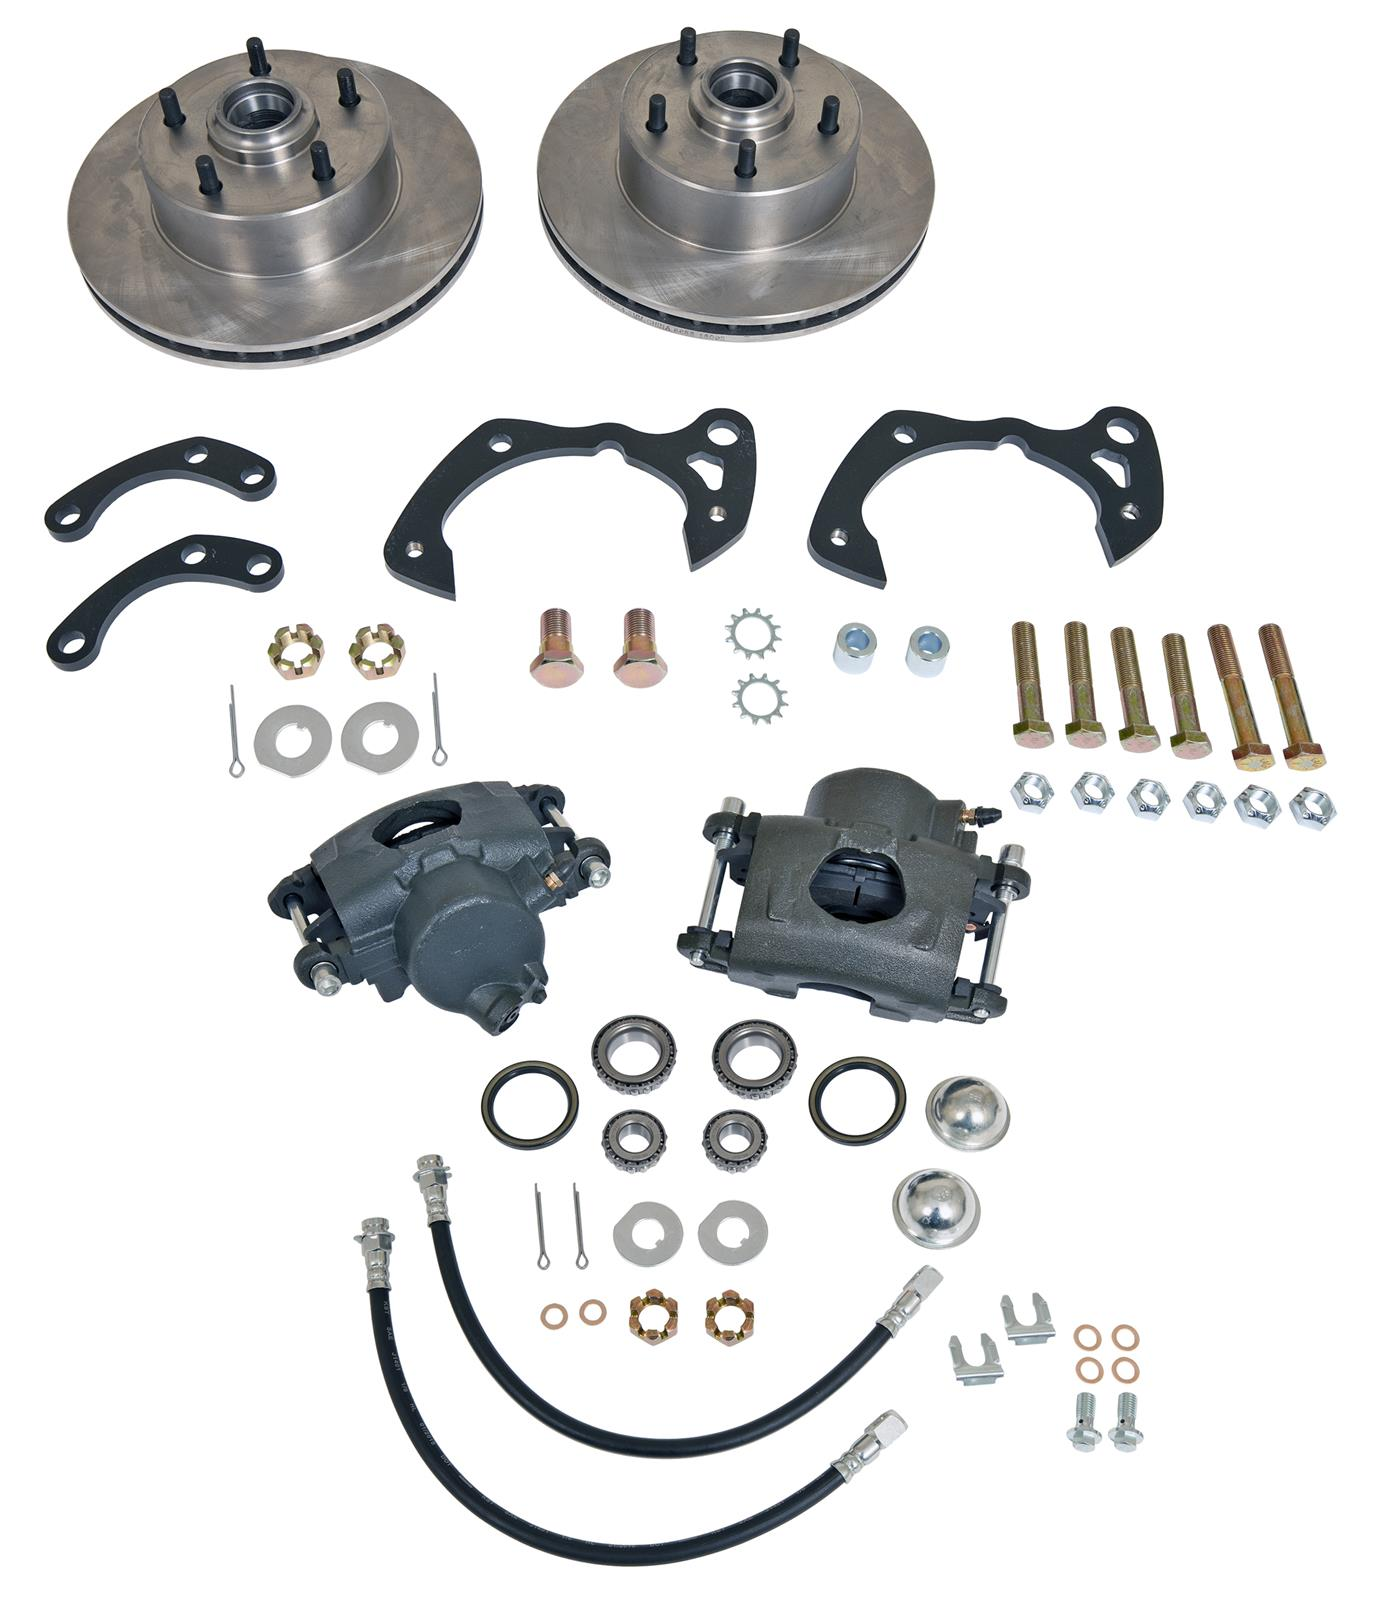 CHEVROLET CAPRICE Classic Performance Offset Wheel Disc Brake Kits 6568WBKS